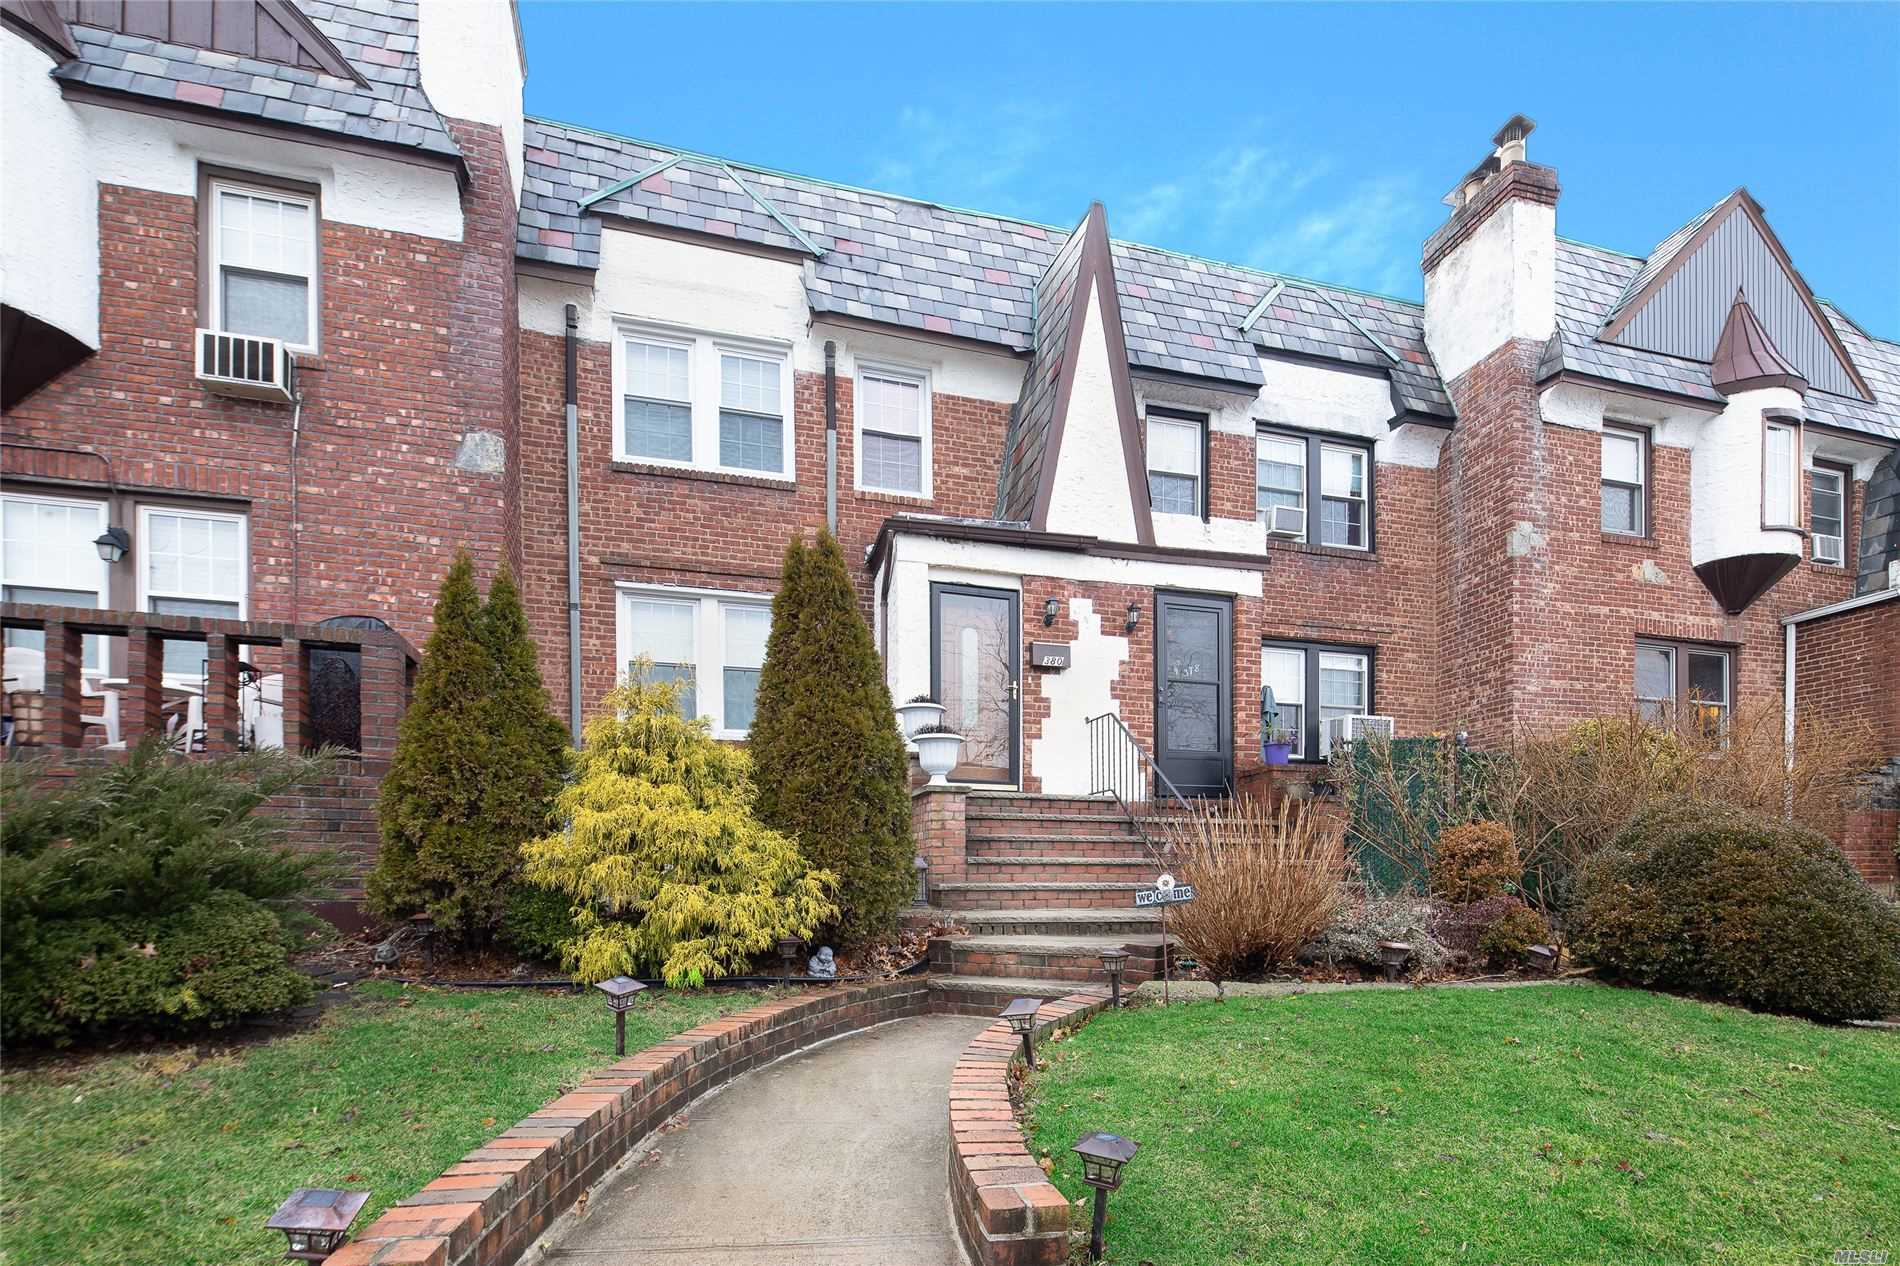 Property for sale at 380 Cochran Place, Valley Stream NY 11581, Valley Stream,  New York 11581